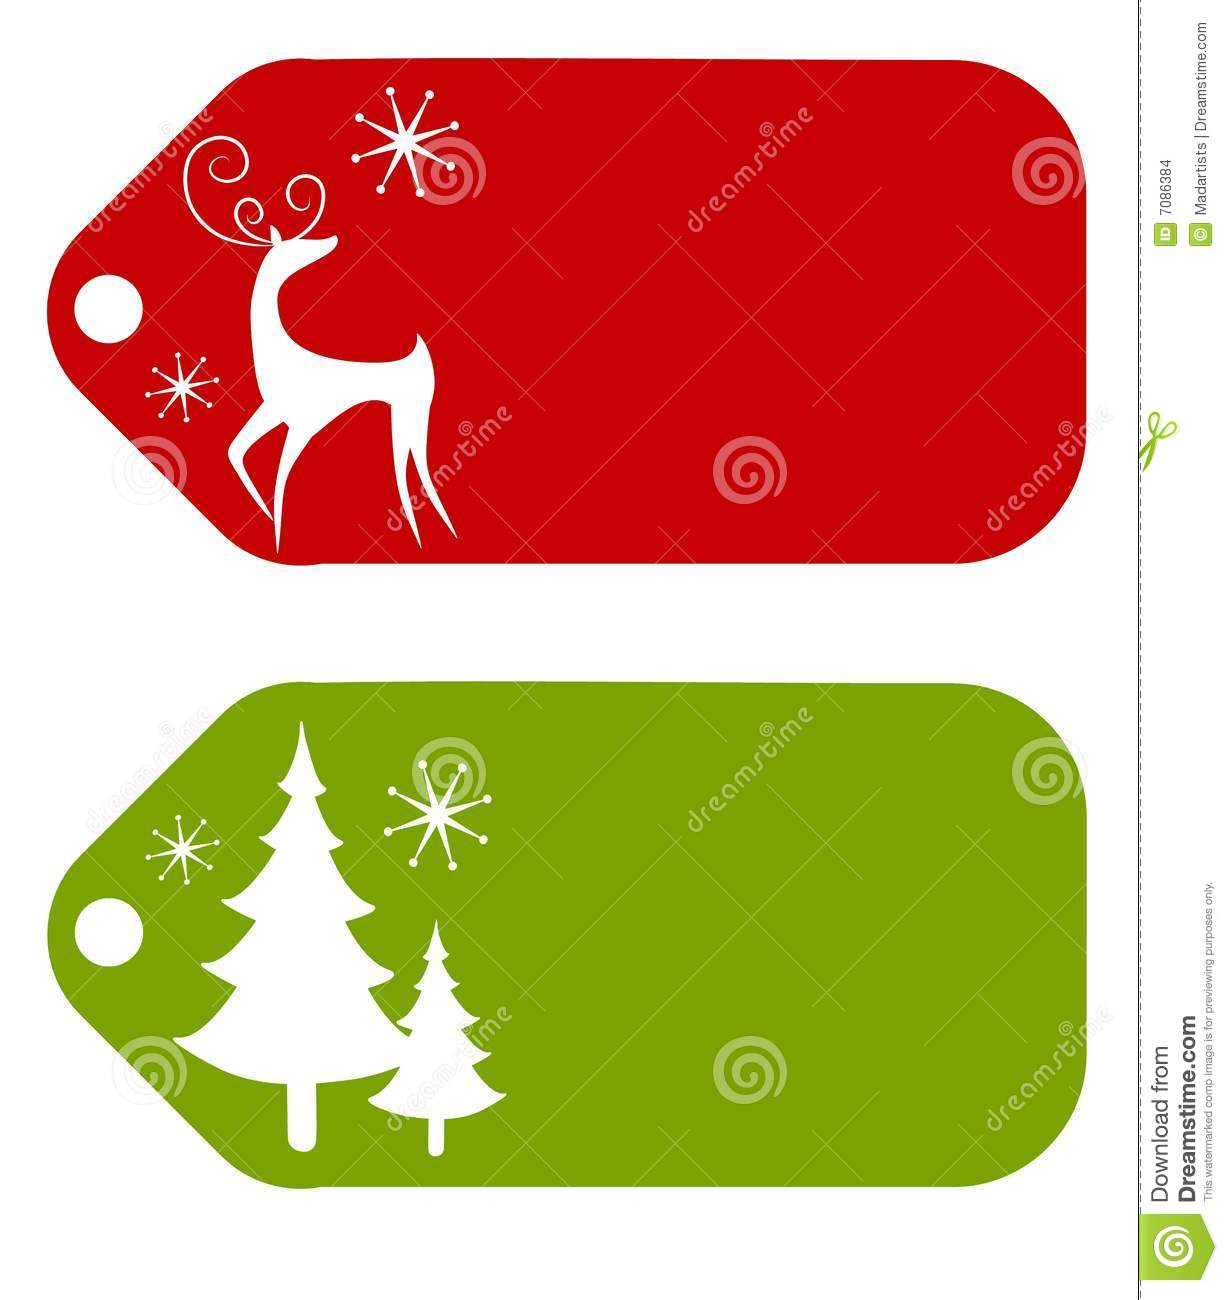 an illustration featuring gift tags decorated with reindeer and christmas tree silhouettes - Decorative Christmas Gift Tags